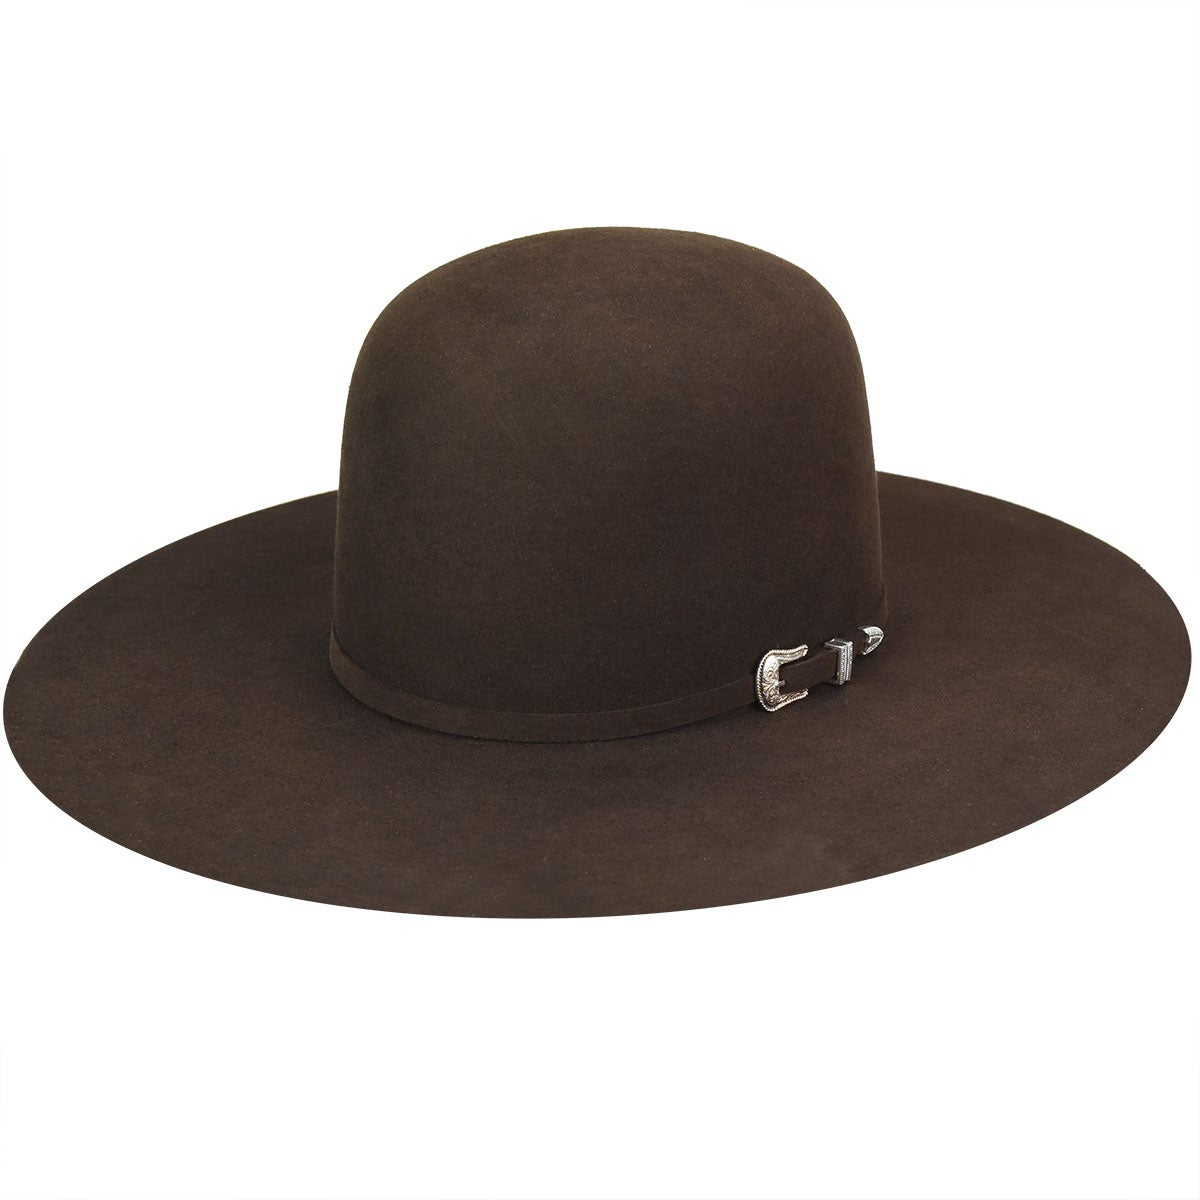 Courtright 7X Open Western Hat - Brown/6 7/8